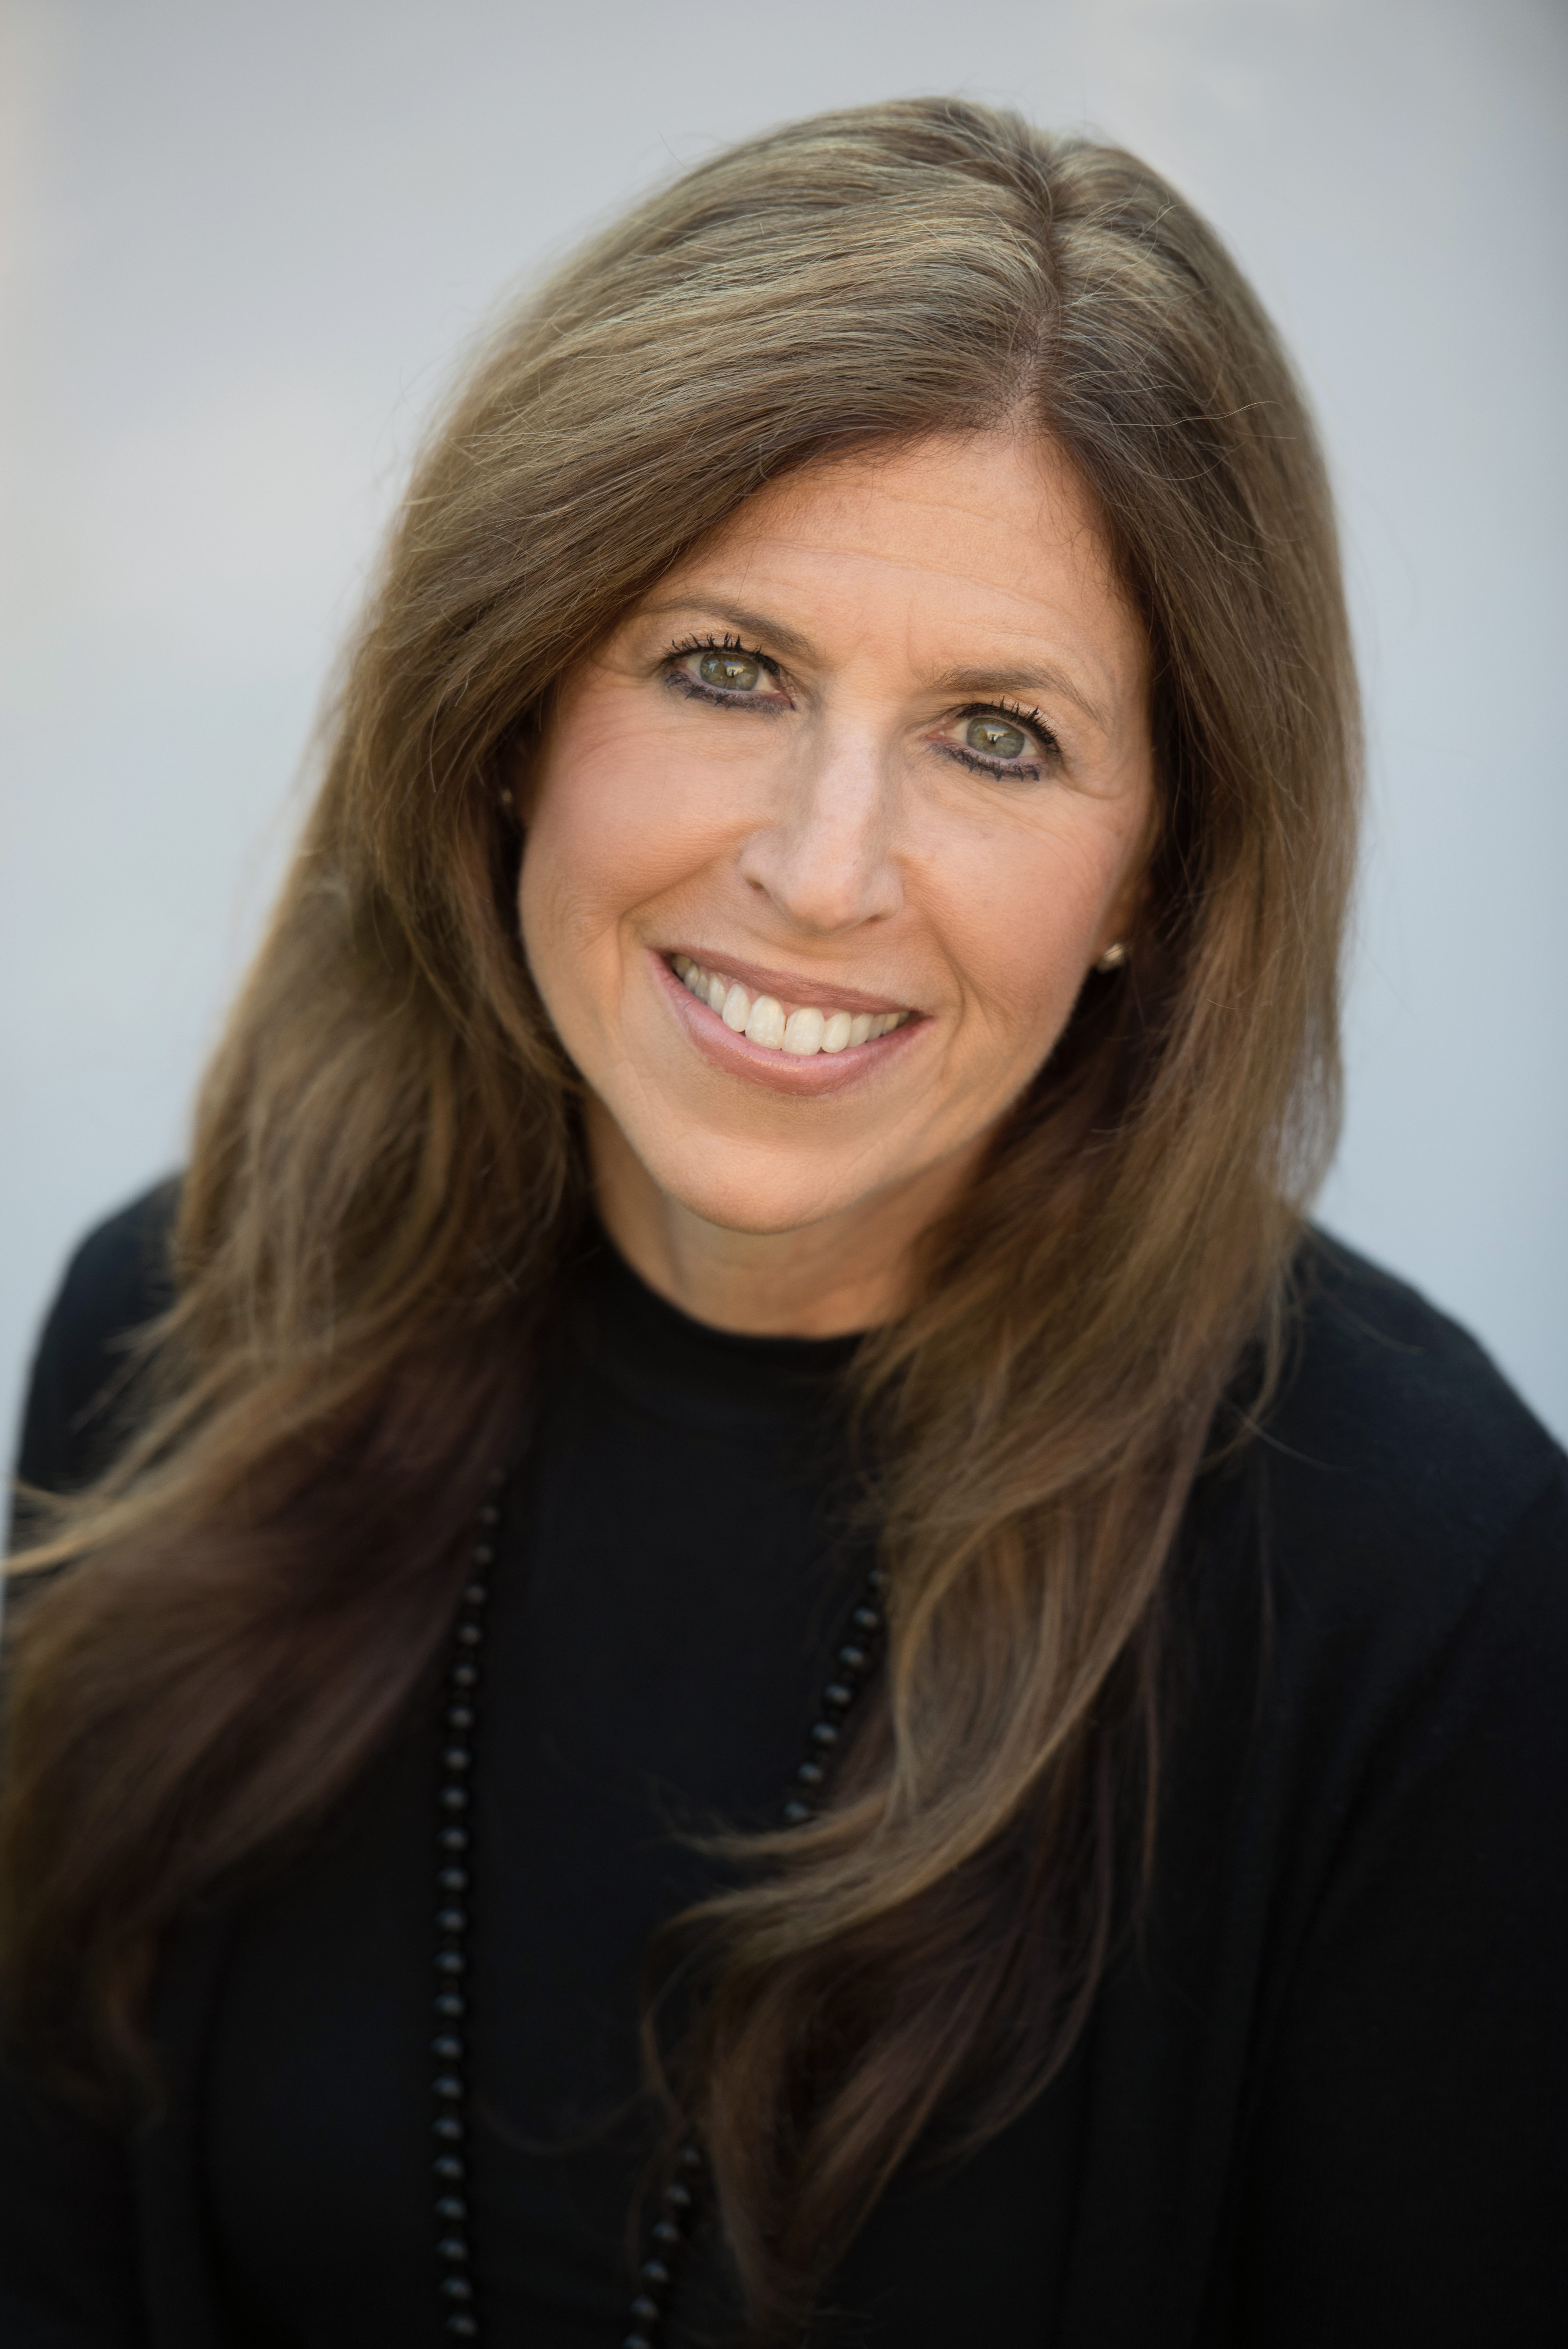 Susan J. Turkell, Founder and CEO, PAIRELATIONS, LLC